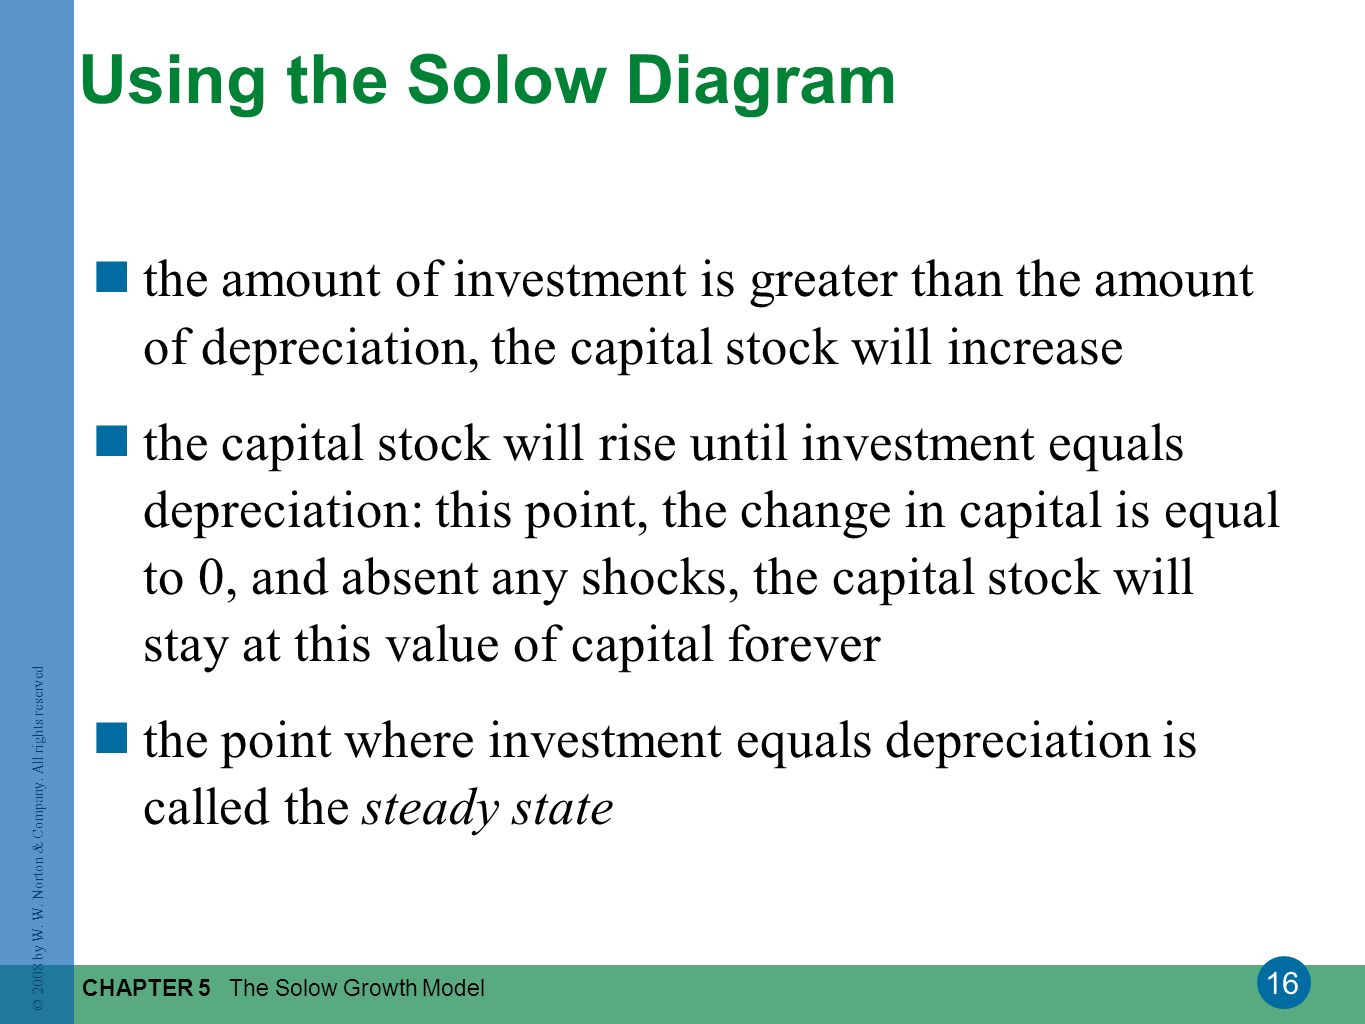 Using the Solow Diagram